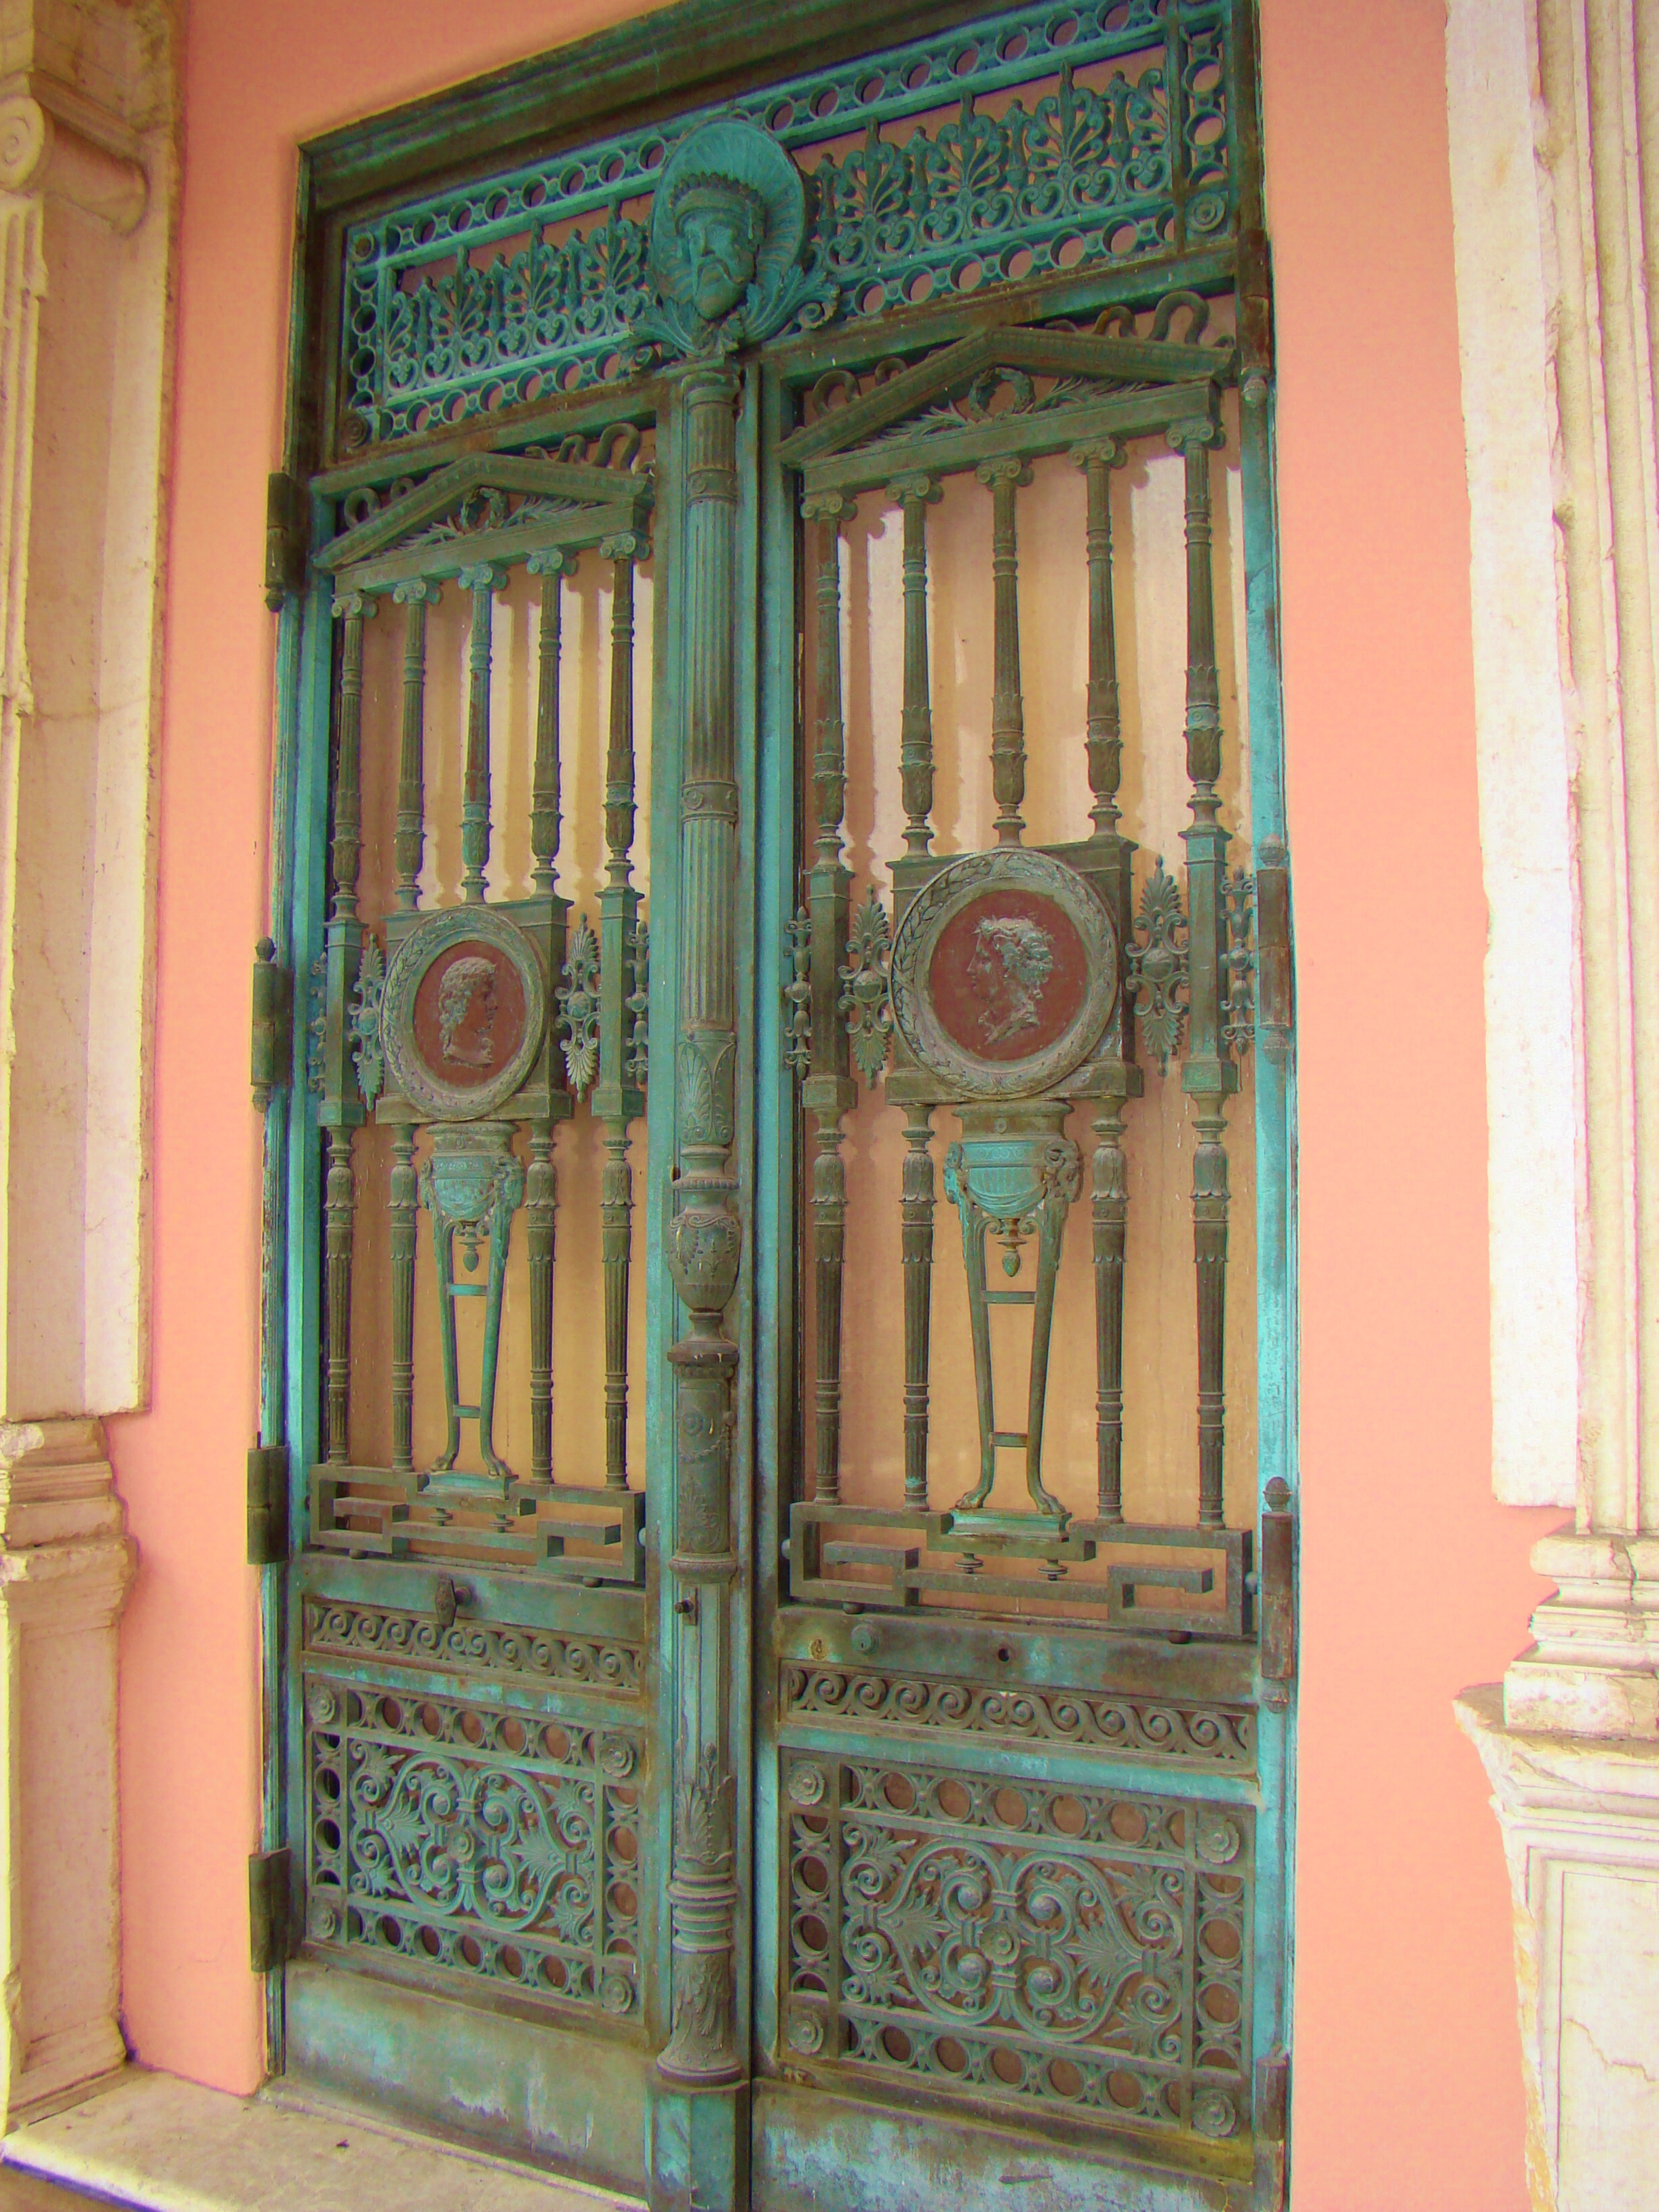 Nice Interstices (or What Other Folks Call Doors)